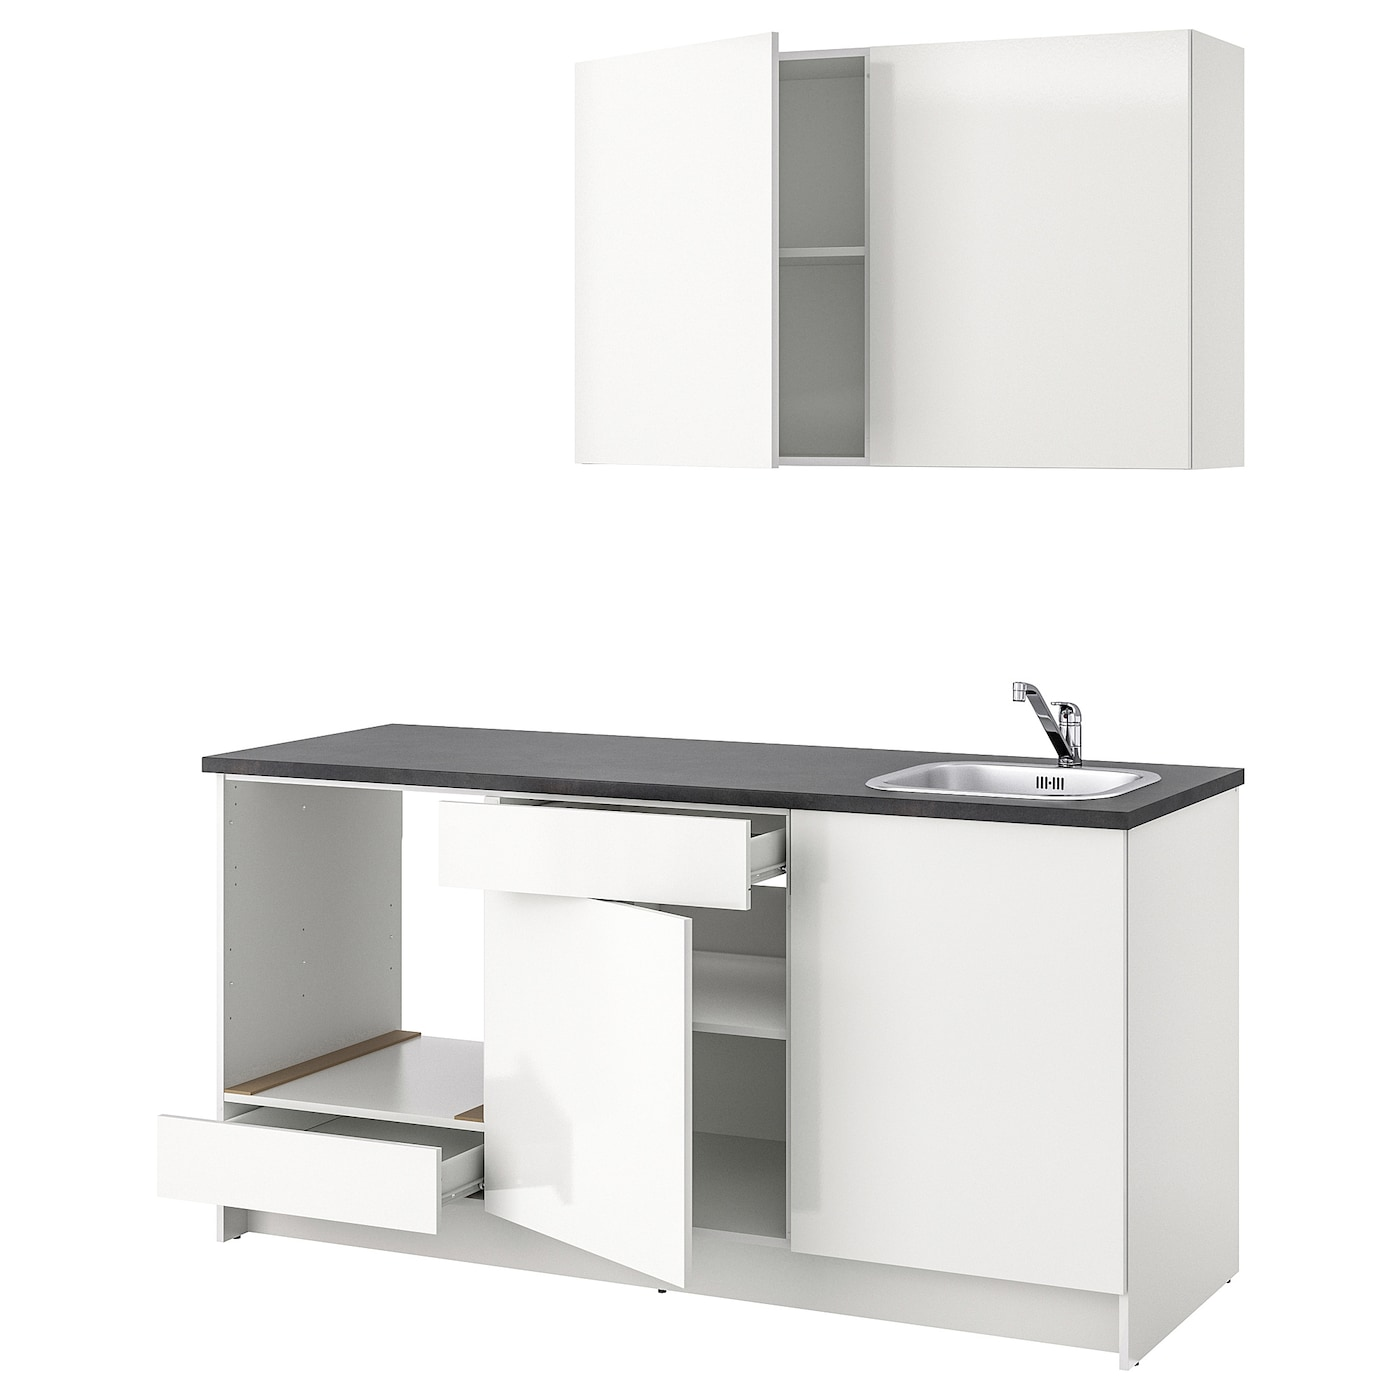 Ikea Kitchen Modules: Modular Kitchens - Modular Kitchen Sets